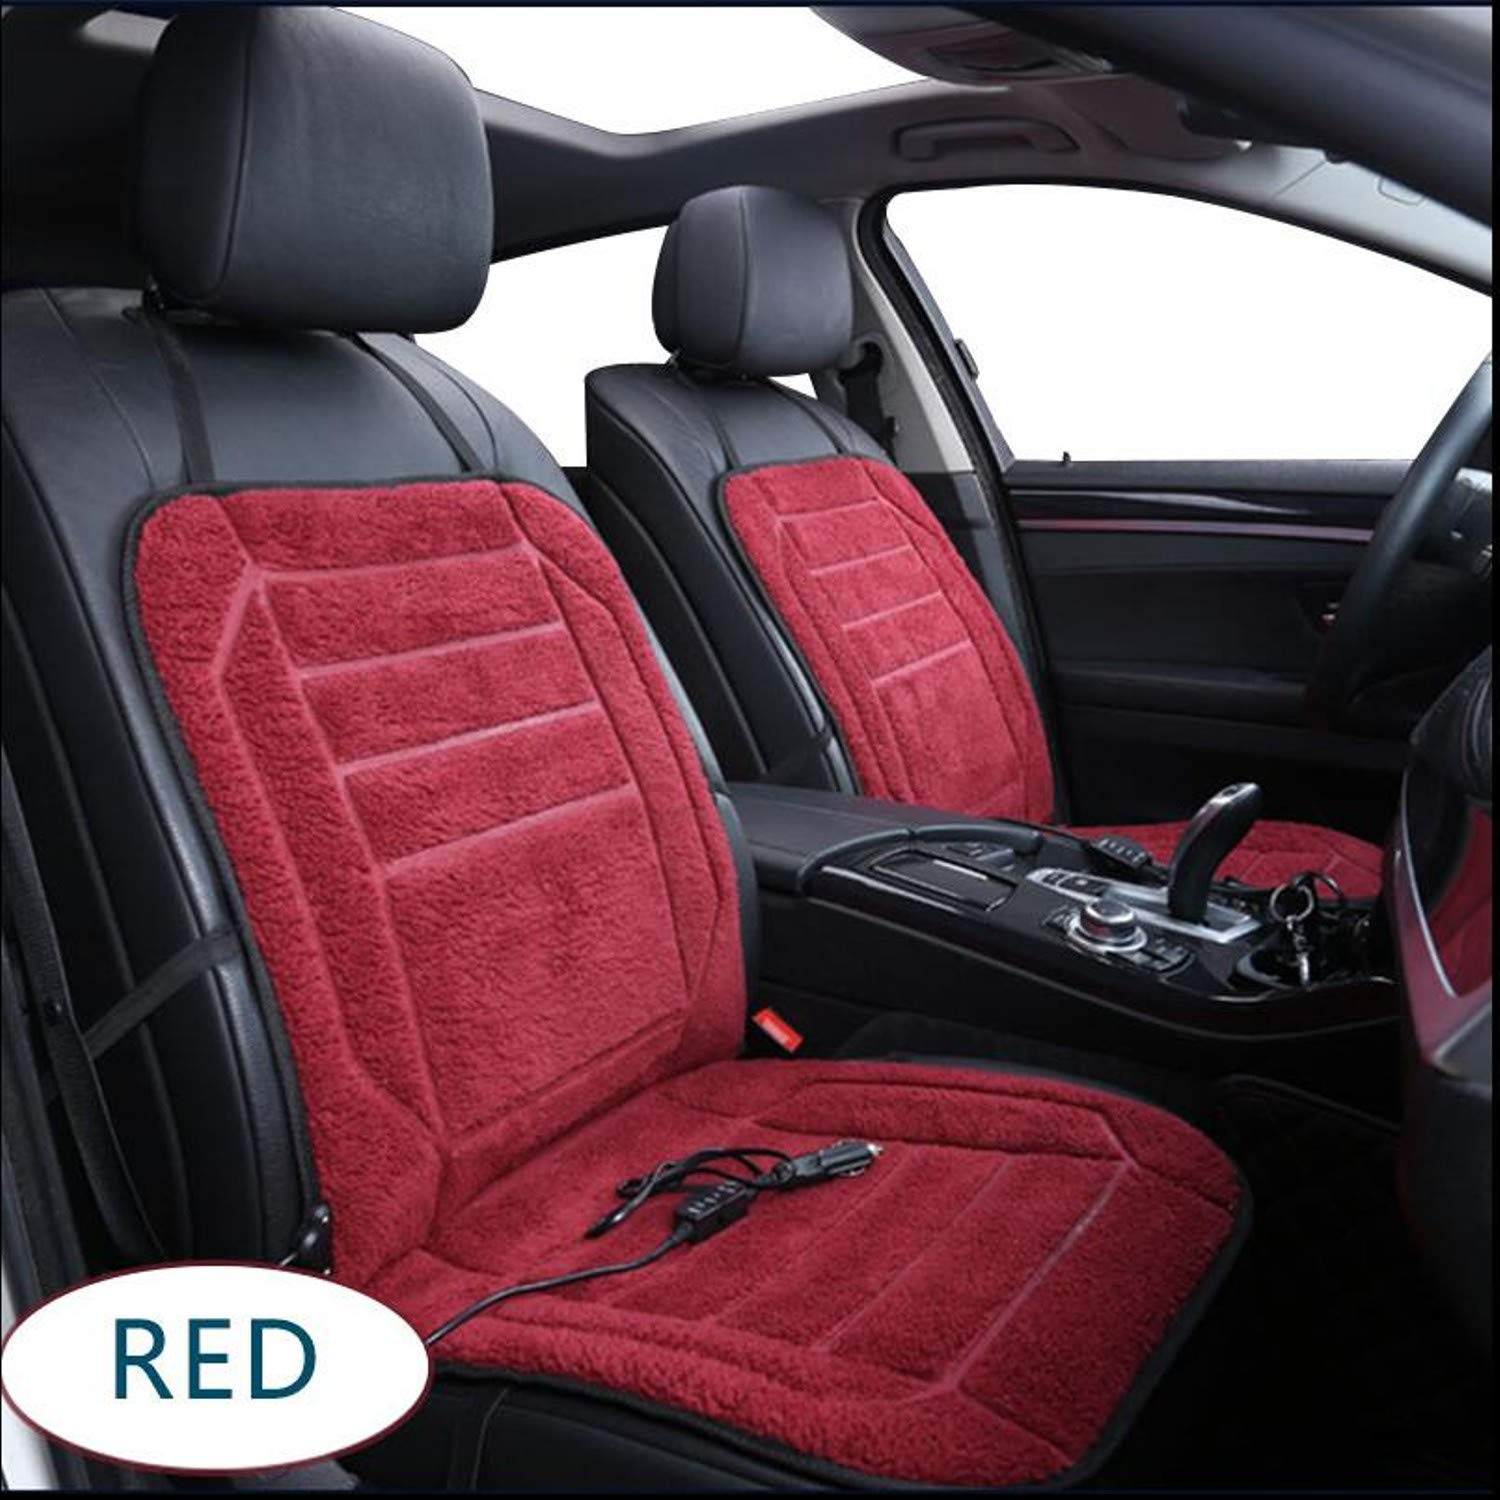 Heated Car Seat Cushion Cover 1PCS 12V Seat Heater Warmer Winter AUTOYOUTH Household Cushion Cardriver Car Interior Accessories (Black) Vimart